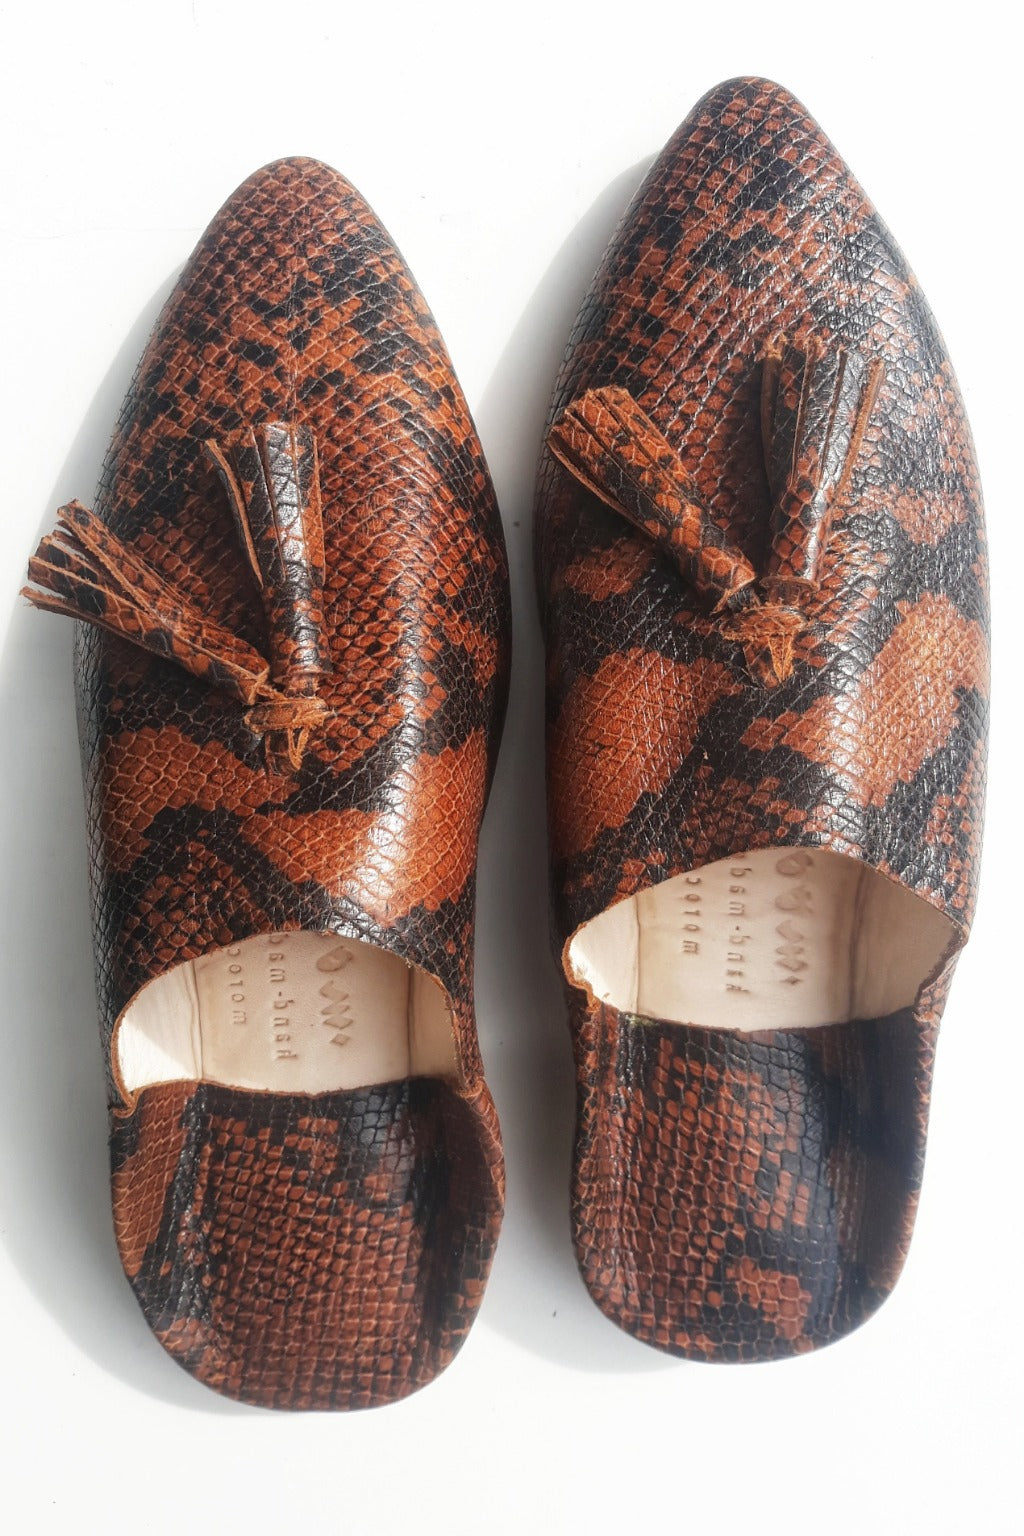 Marrakech Tan Snakeskin Babouches